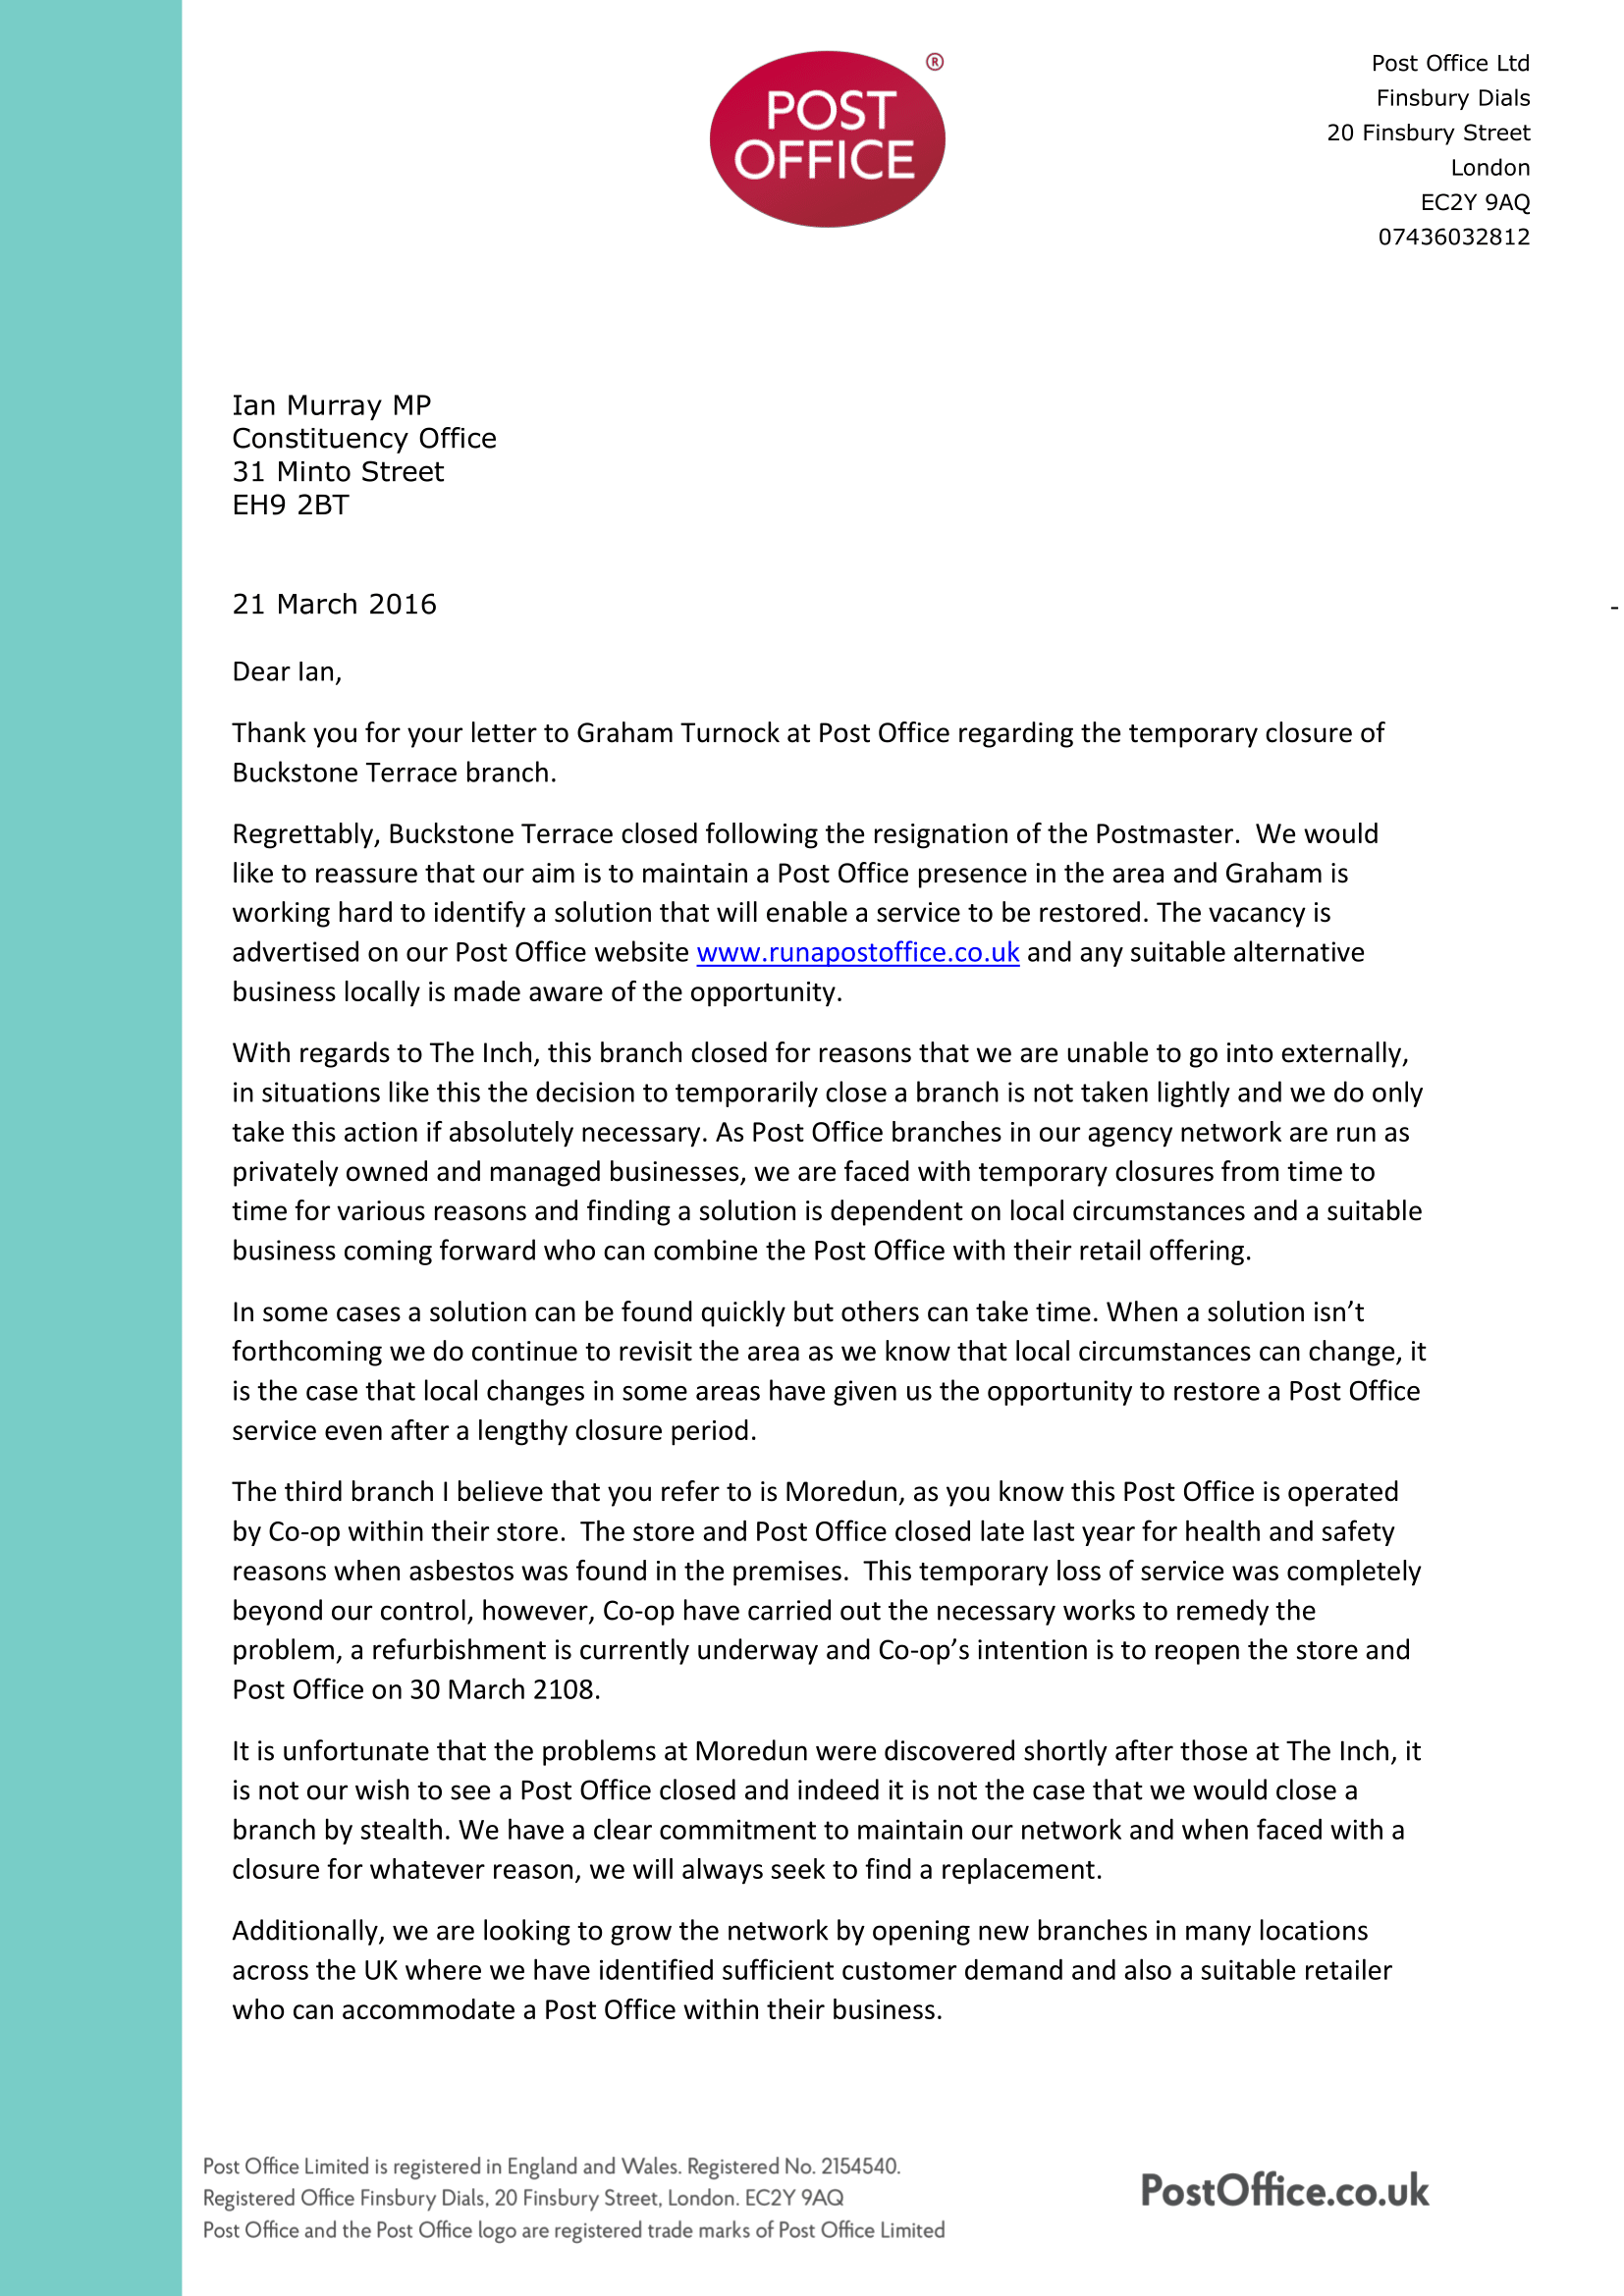 LB_letter_to_Ian_Murray_MP__Buckstone_Terrace_PO-1.png